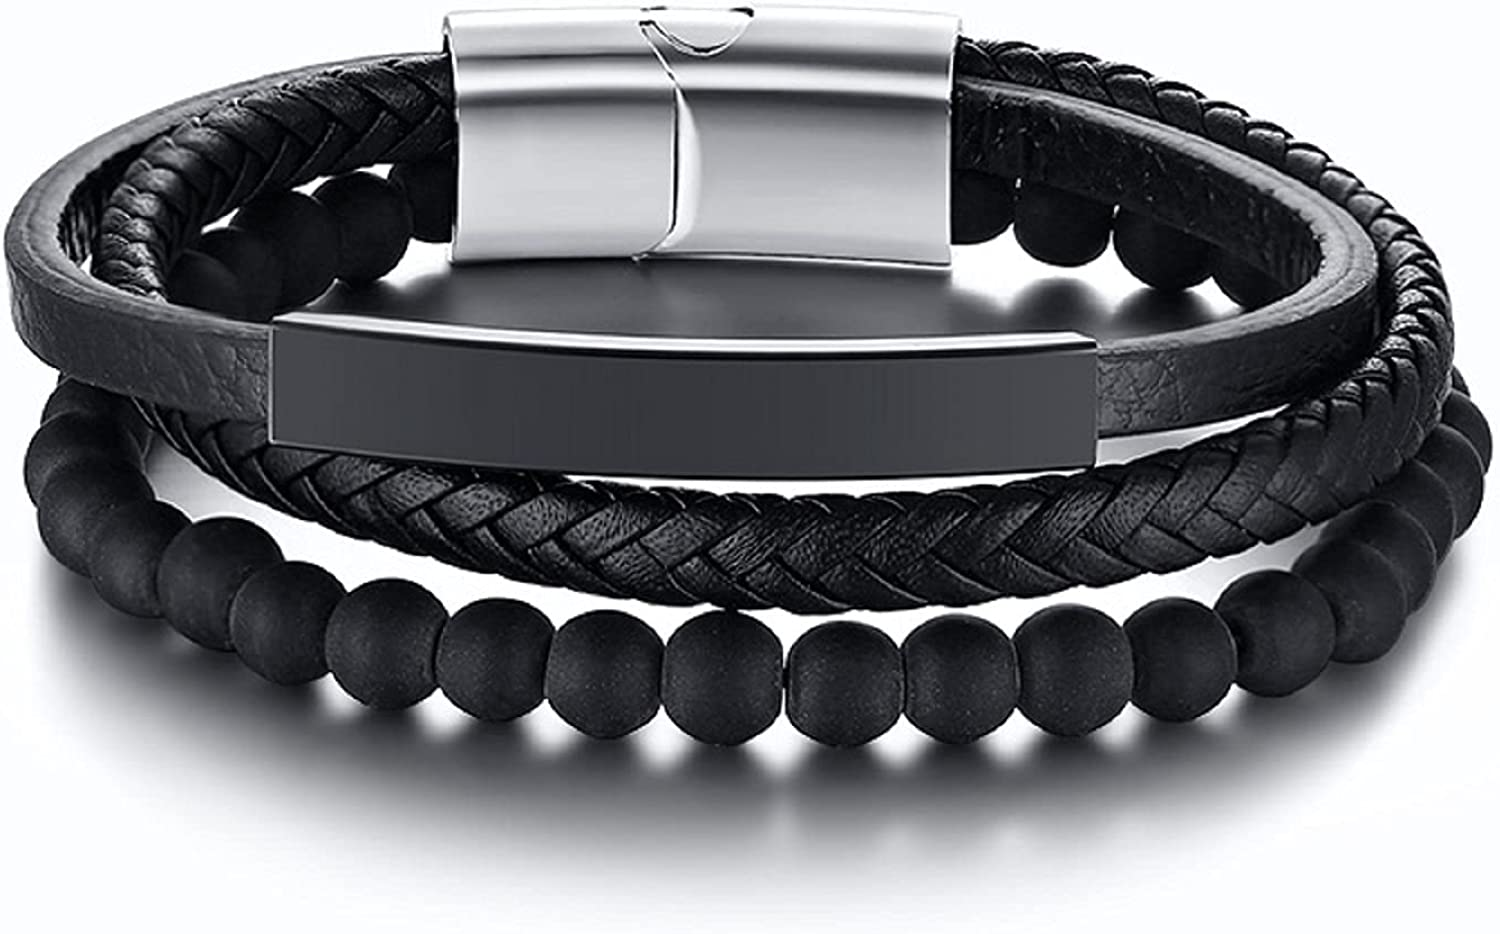 TempBeau Multi-Layer Leather Bracelet with Natural Bead Stone Strand, Braided Leather Wristbands, Stainless Steel Magnetic Clasp Wrap Cuff for Men Women Jewelry